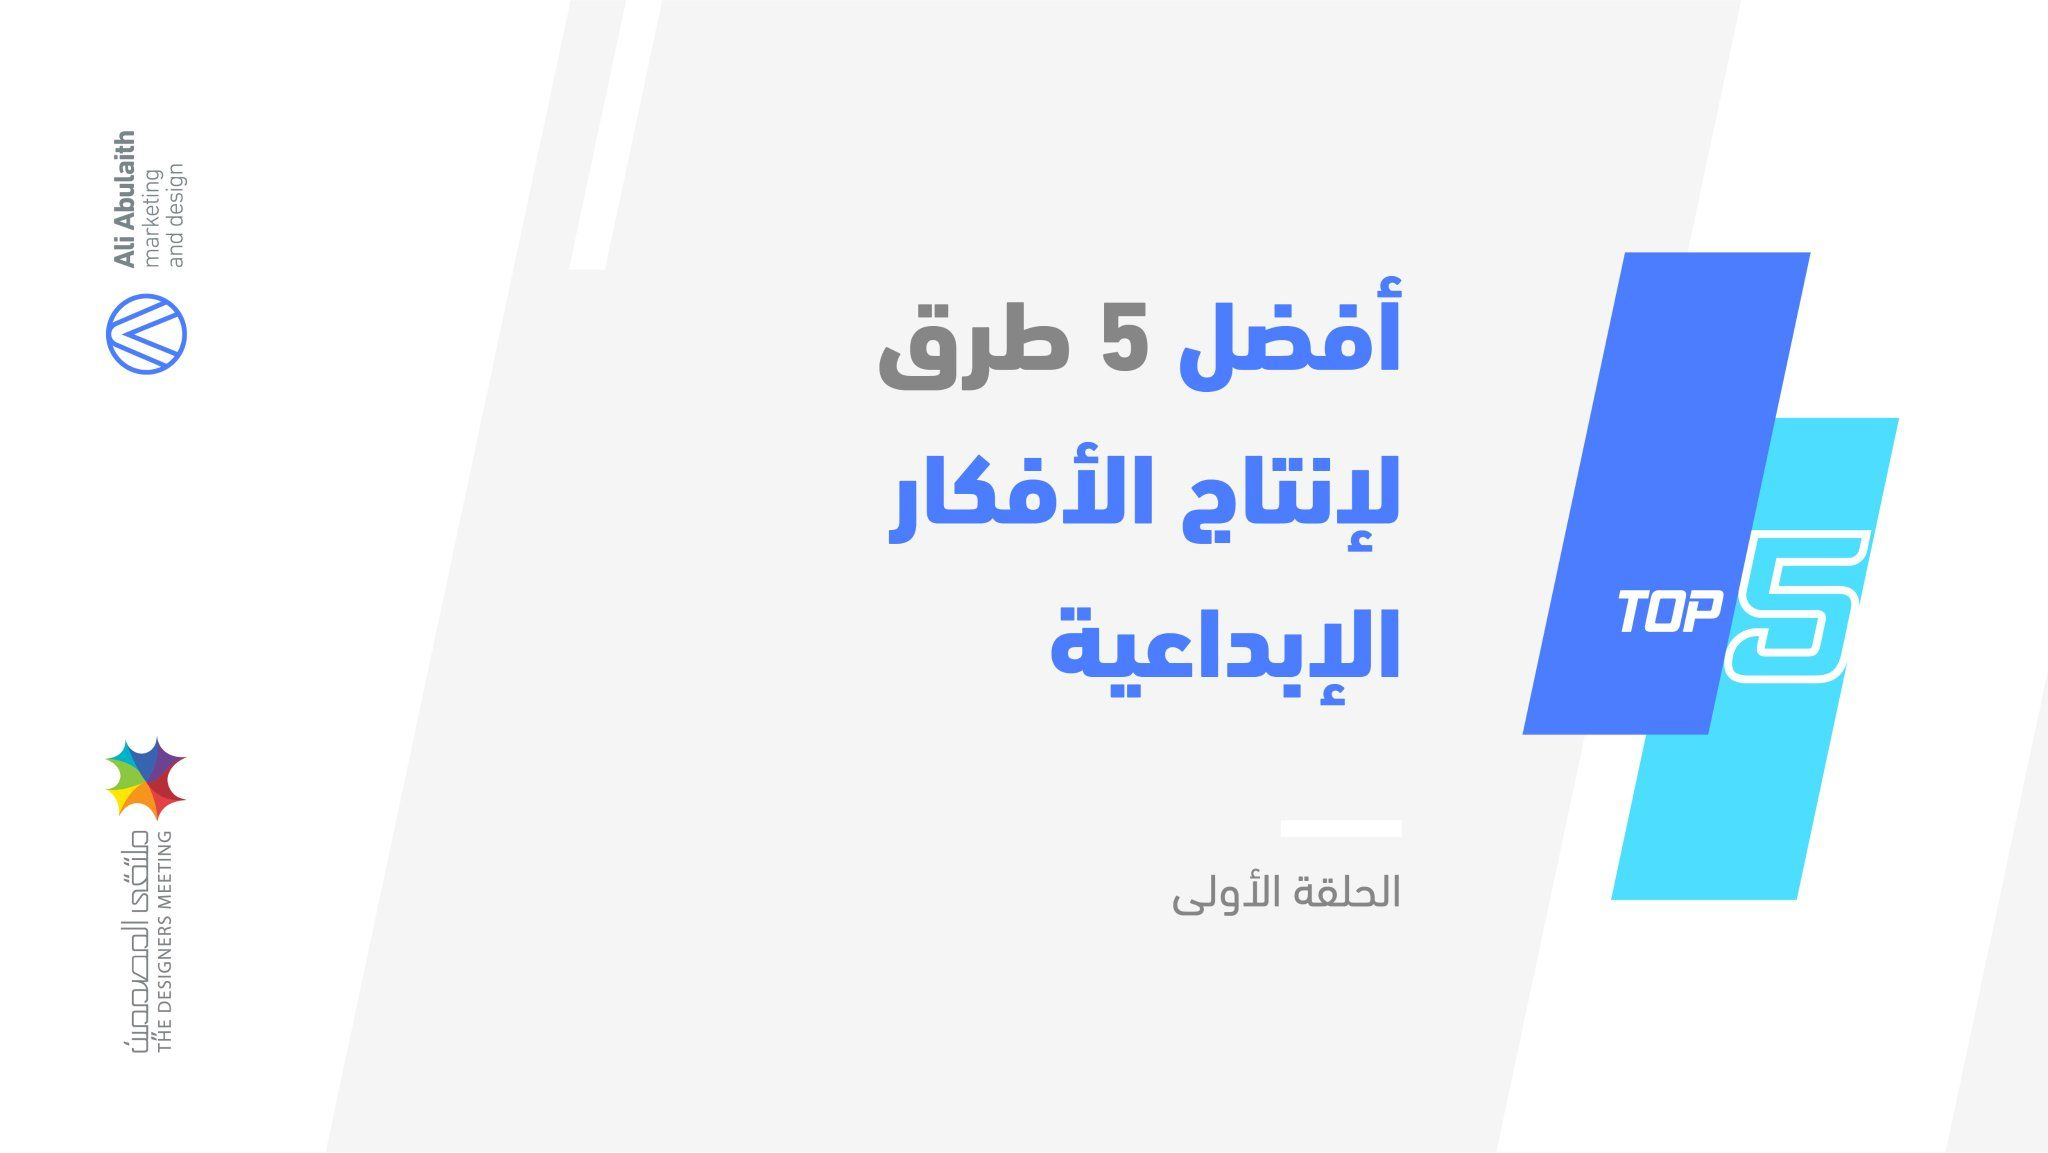 ملتقى المصممين On Twitter Marketing Twitter Sign Up Development